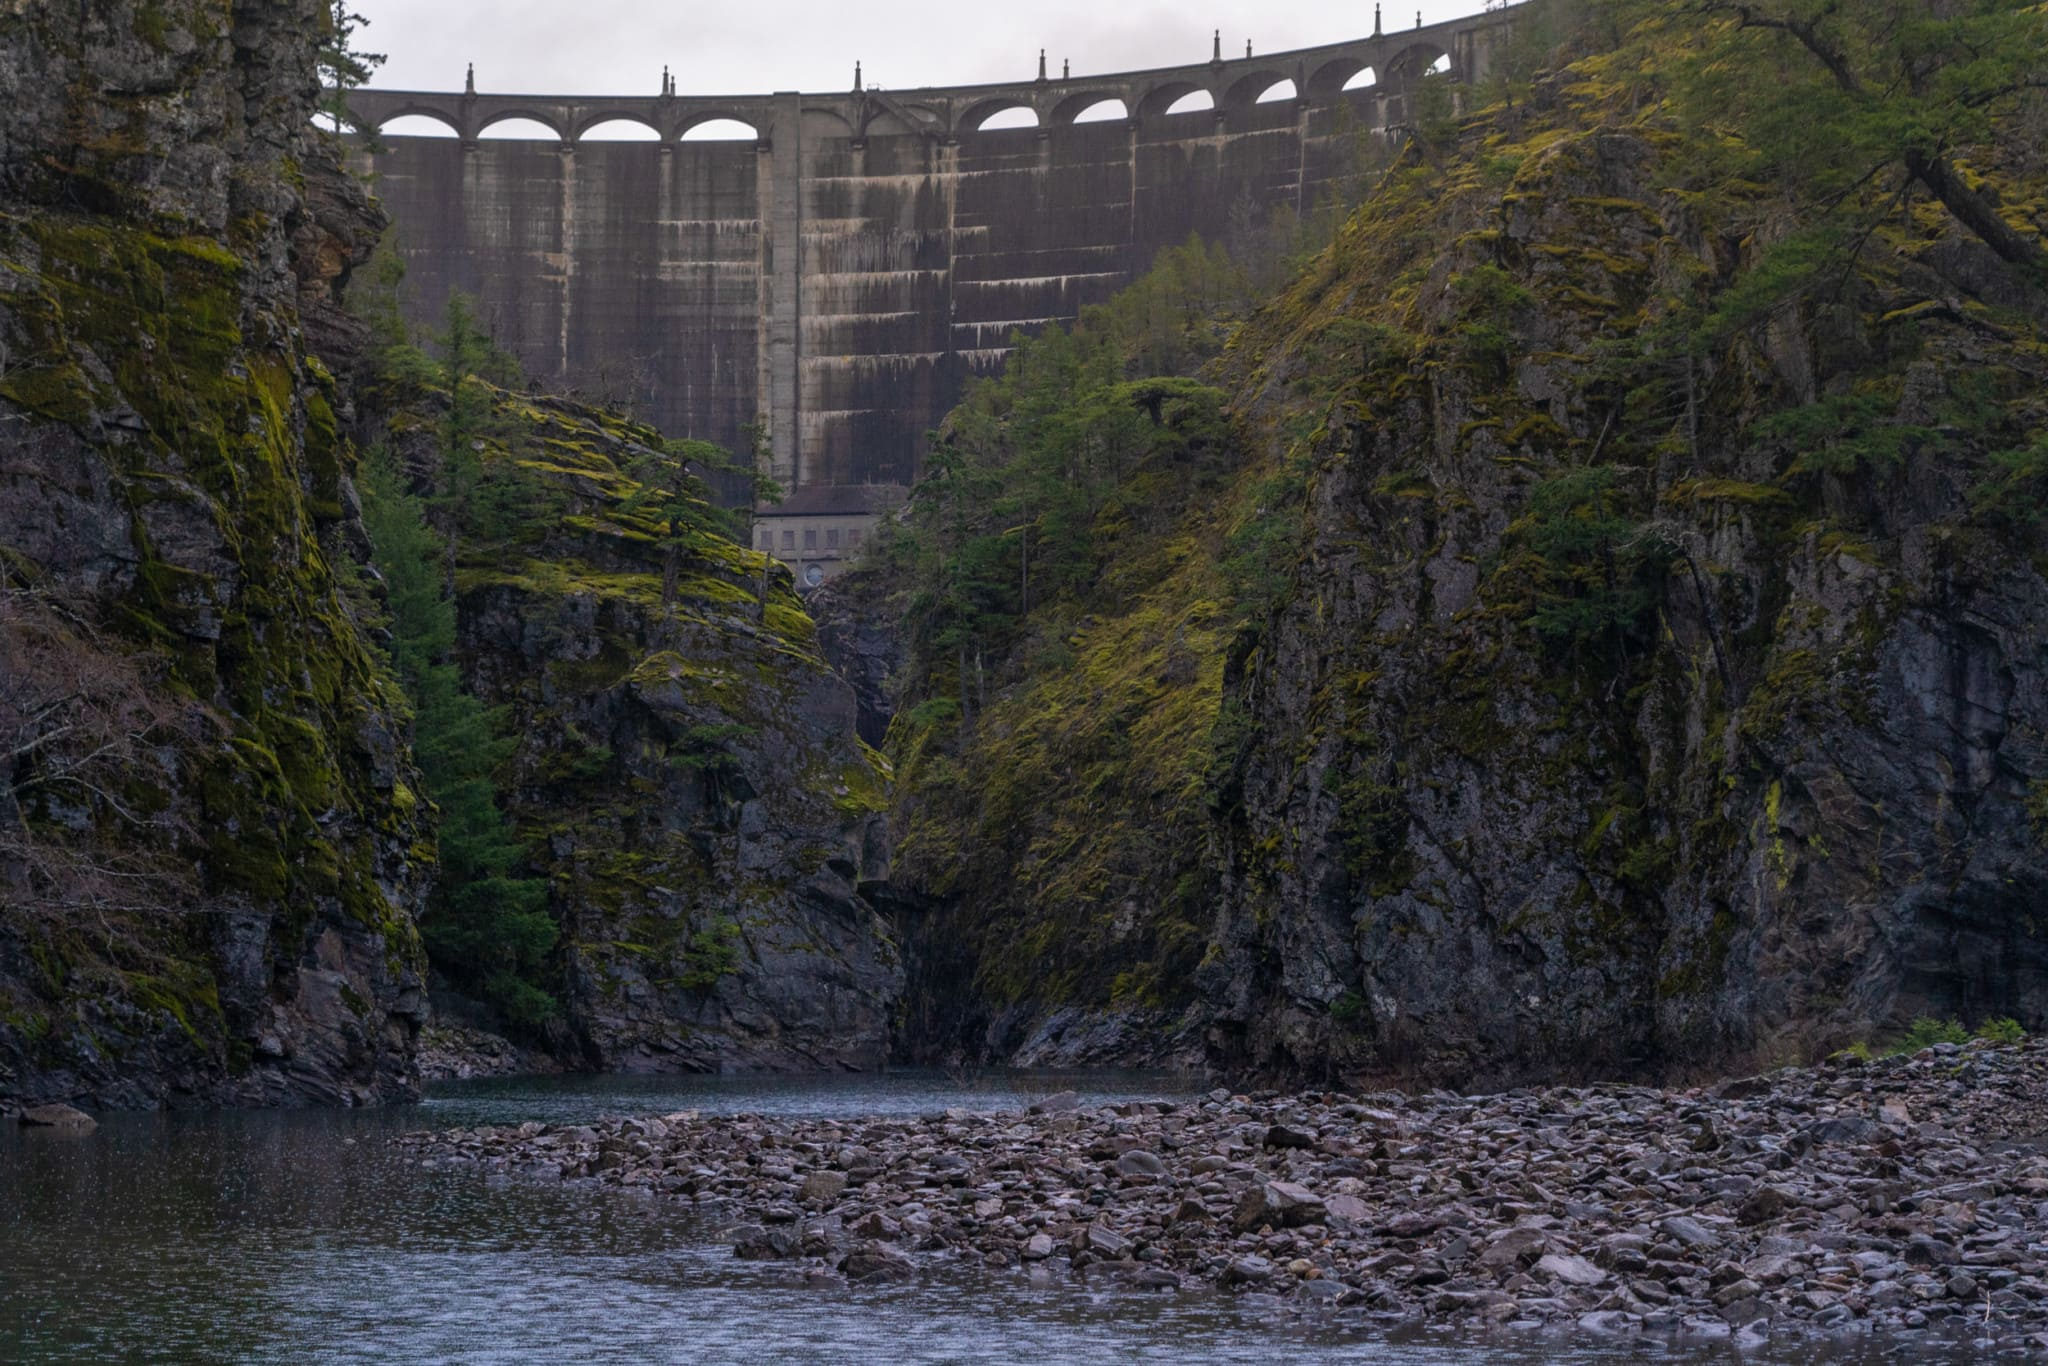 The Diablo Dam was constructed in 1936 and continues to provide electricity to Seattle. Photo: Fernando Lessa / The Narwhal